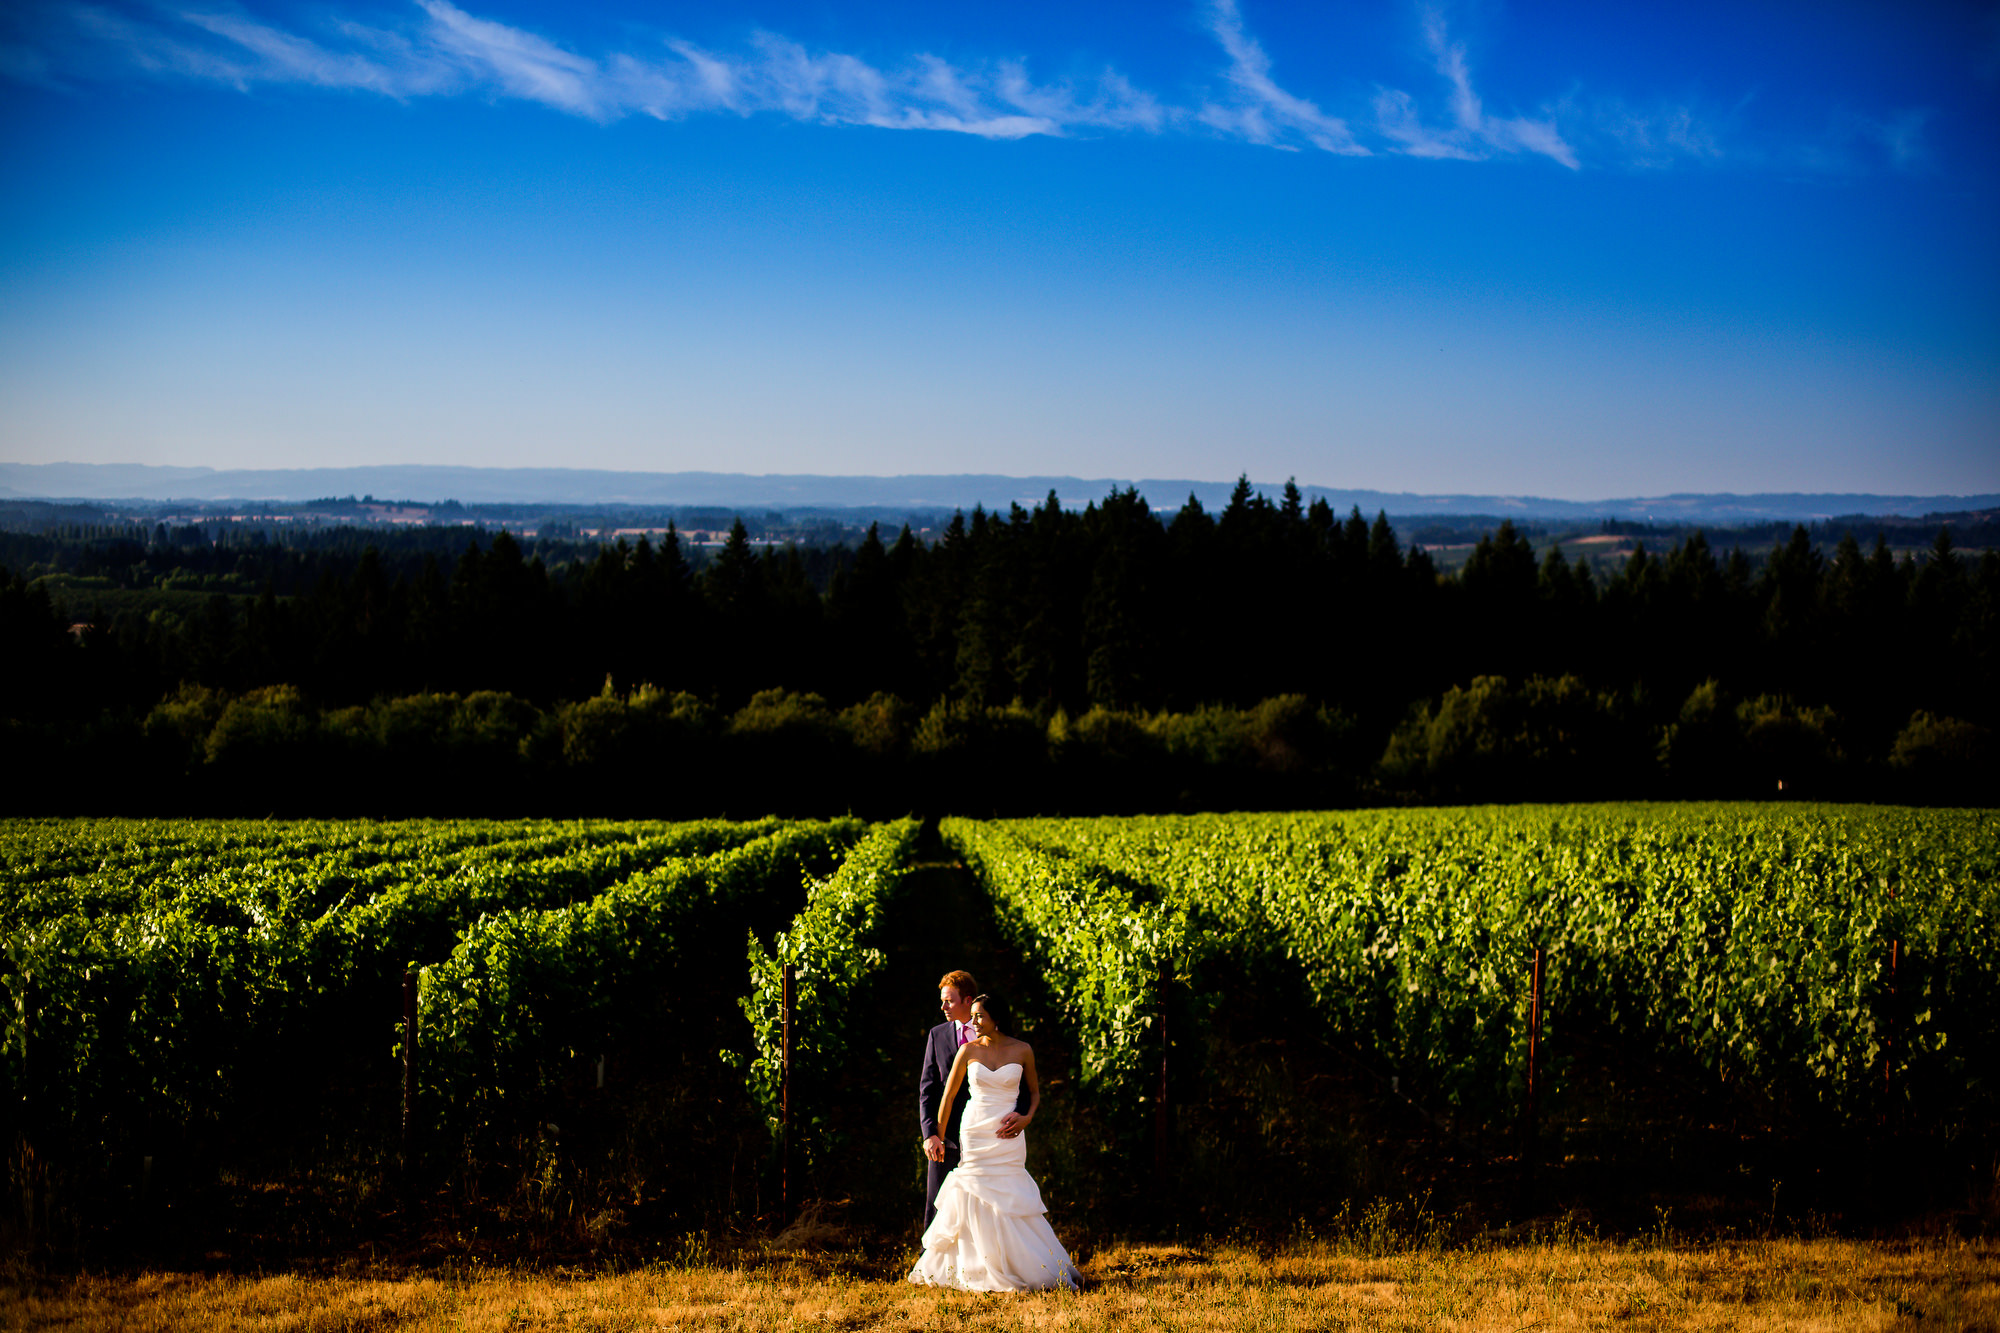 A traditional Indian ceremony and wedding held in Portland, Oregon at the Oregon Historical Society with a Western style wedding at Ponzi Winery in the Willamette Valley by Stark Photography. (5)